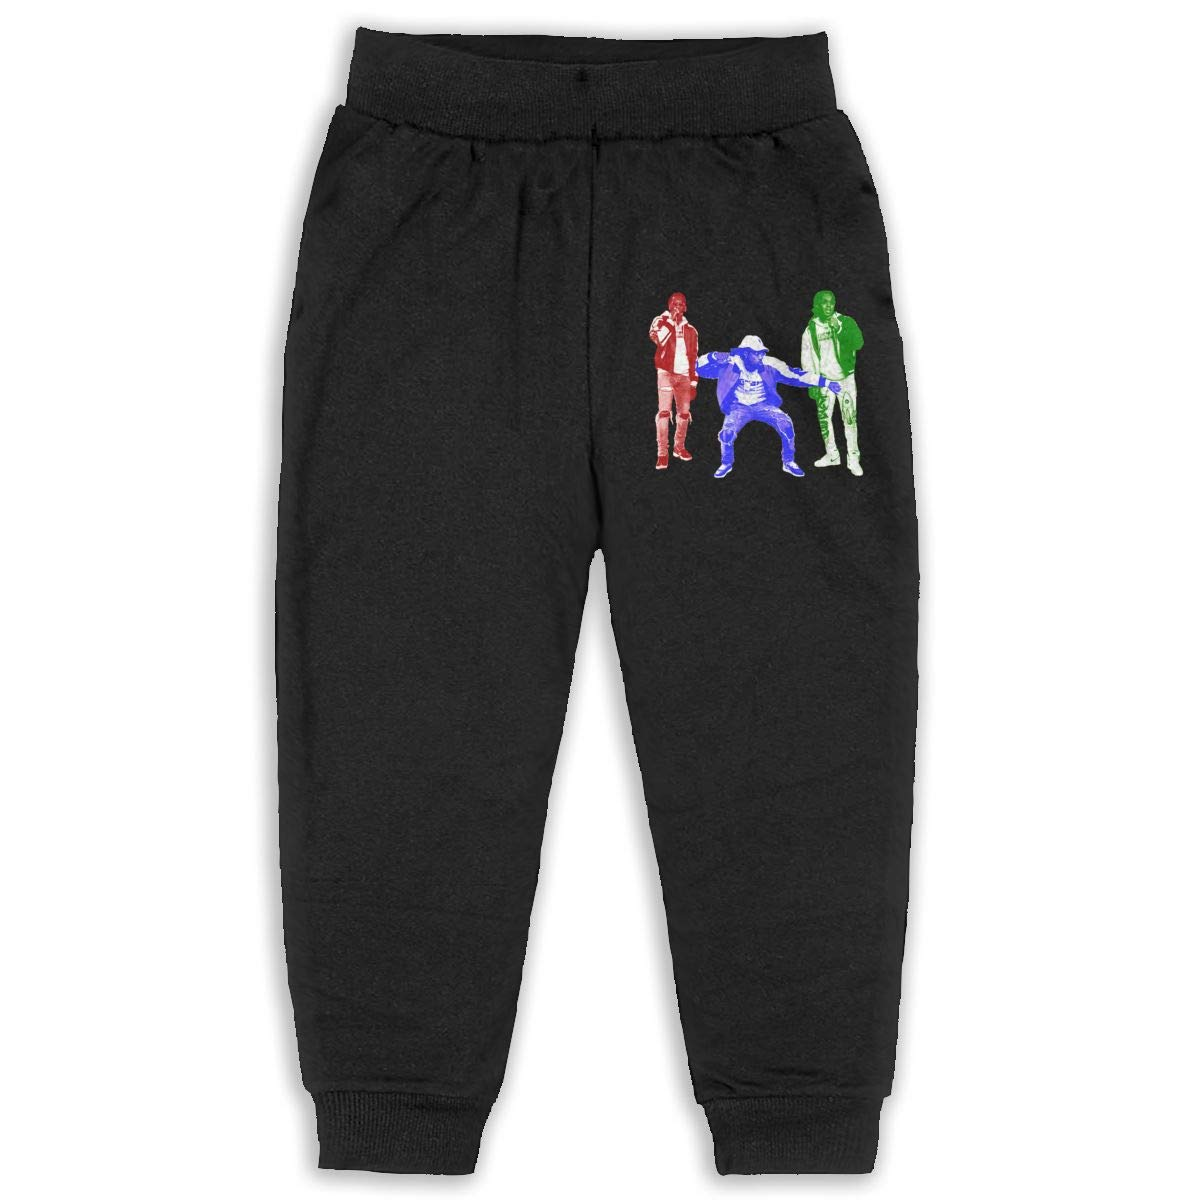 Trisharosew Kids Migos Music Band Boys Girls Sweatpants Stretch Jogger Pants Back Pocket Black